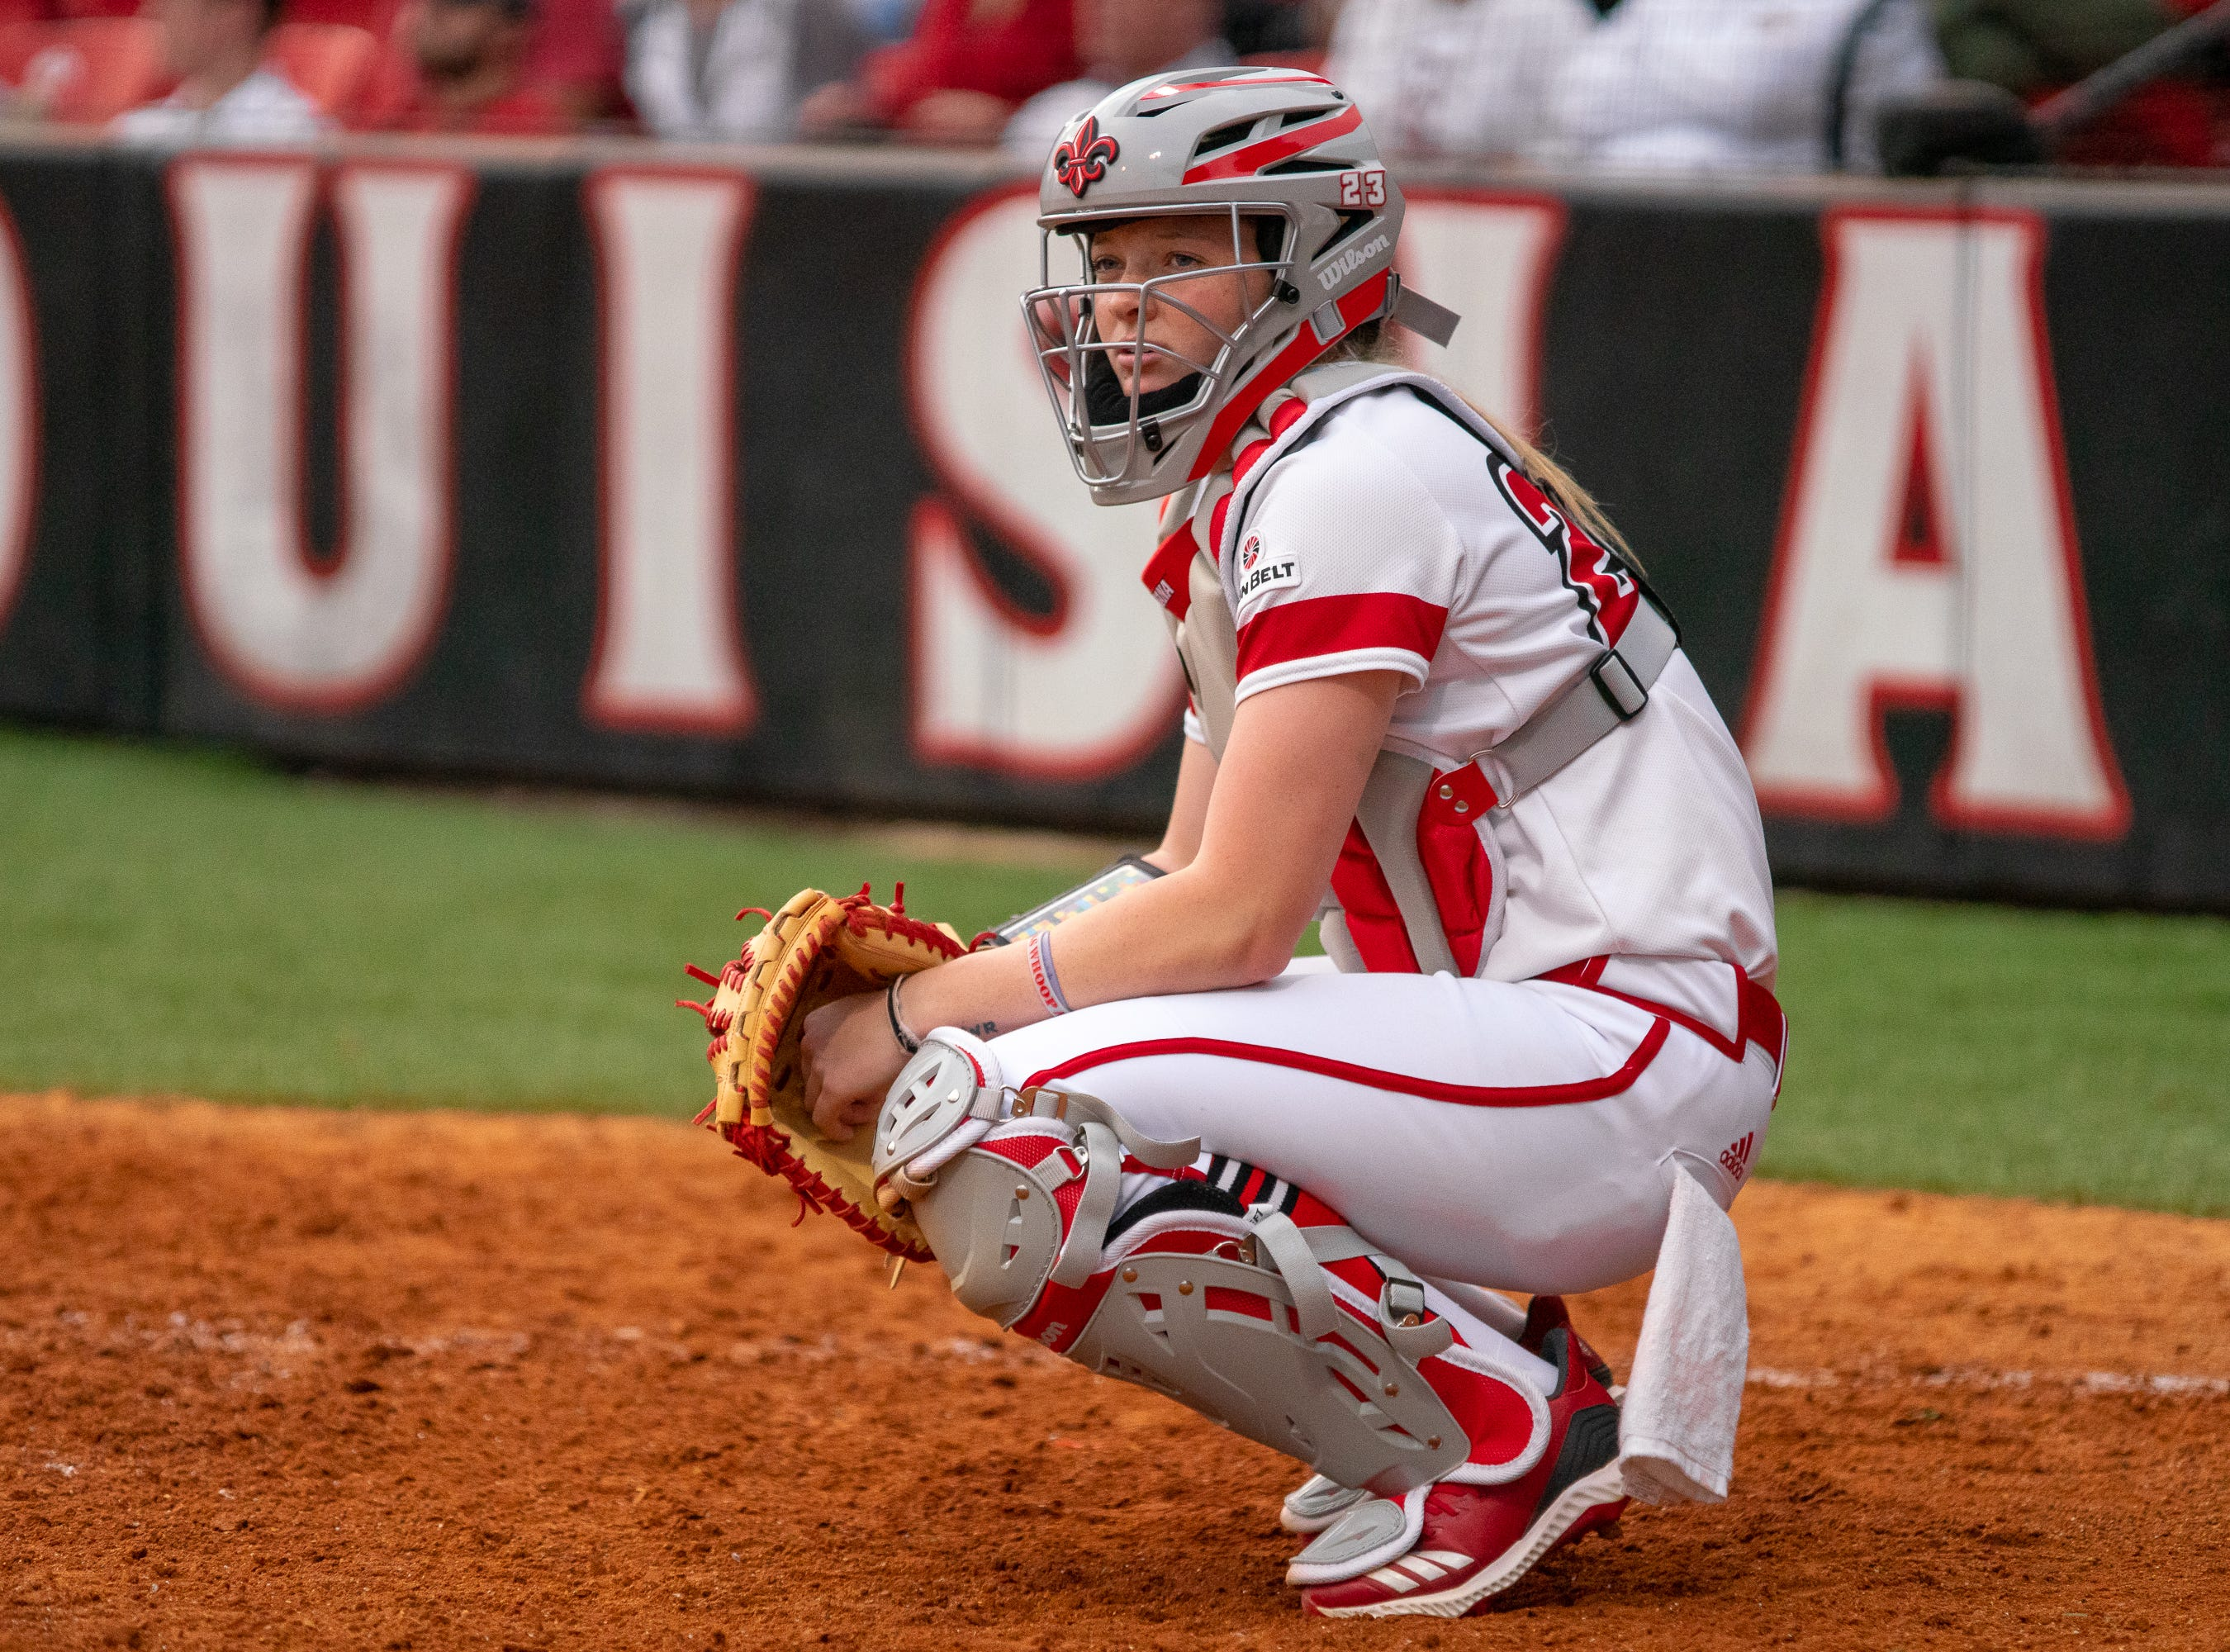 UL's catcher Julie Rawls looks to her coaches in the dugout before the pitch as the Ragin' Cajuns play against the California Golden Bears at Lamson Park on February 11, 2019.